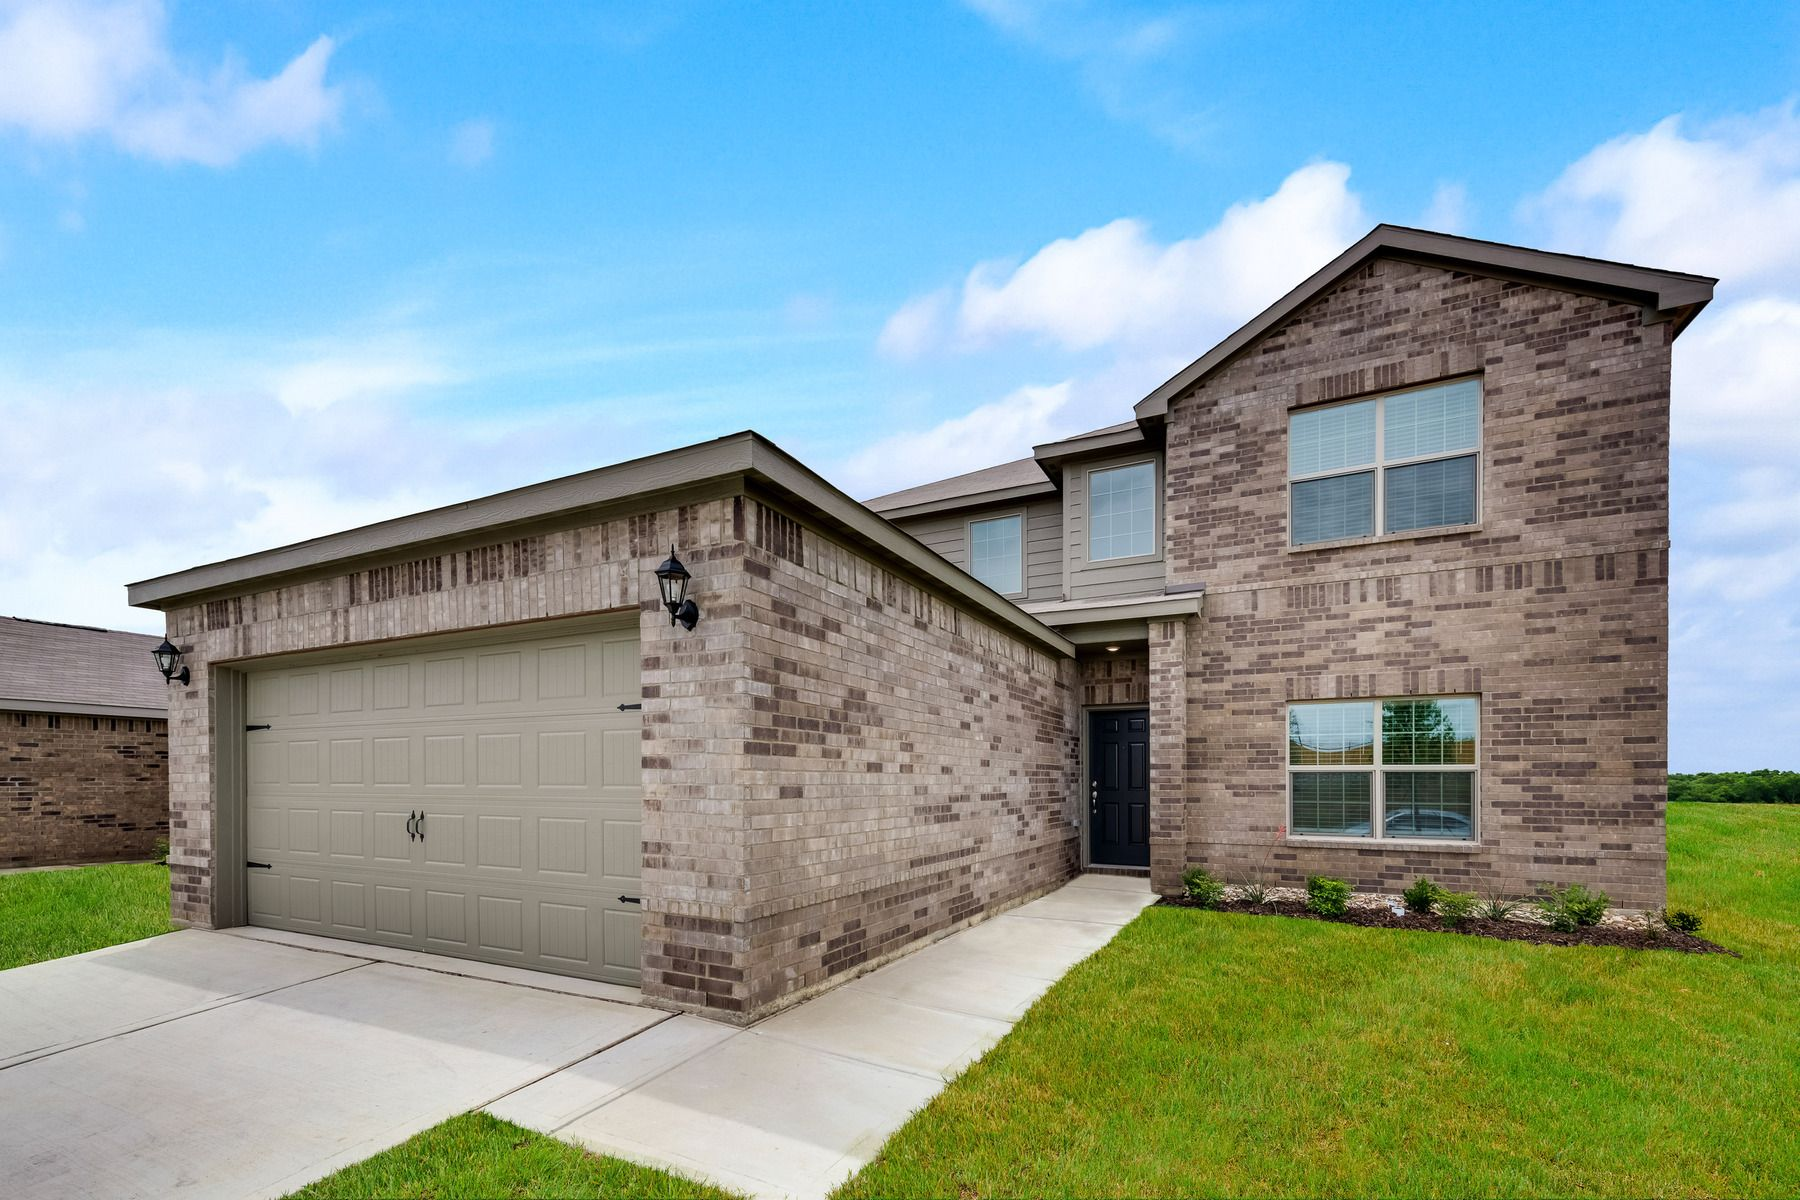 LGI Homes at Shaw Creek Ranch:The gorgeous Oakmont plan has incredible curb appeal.